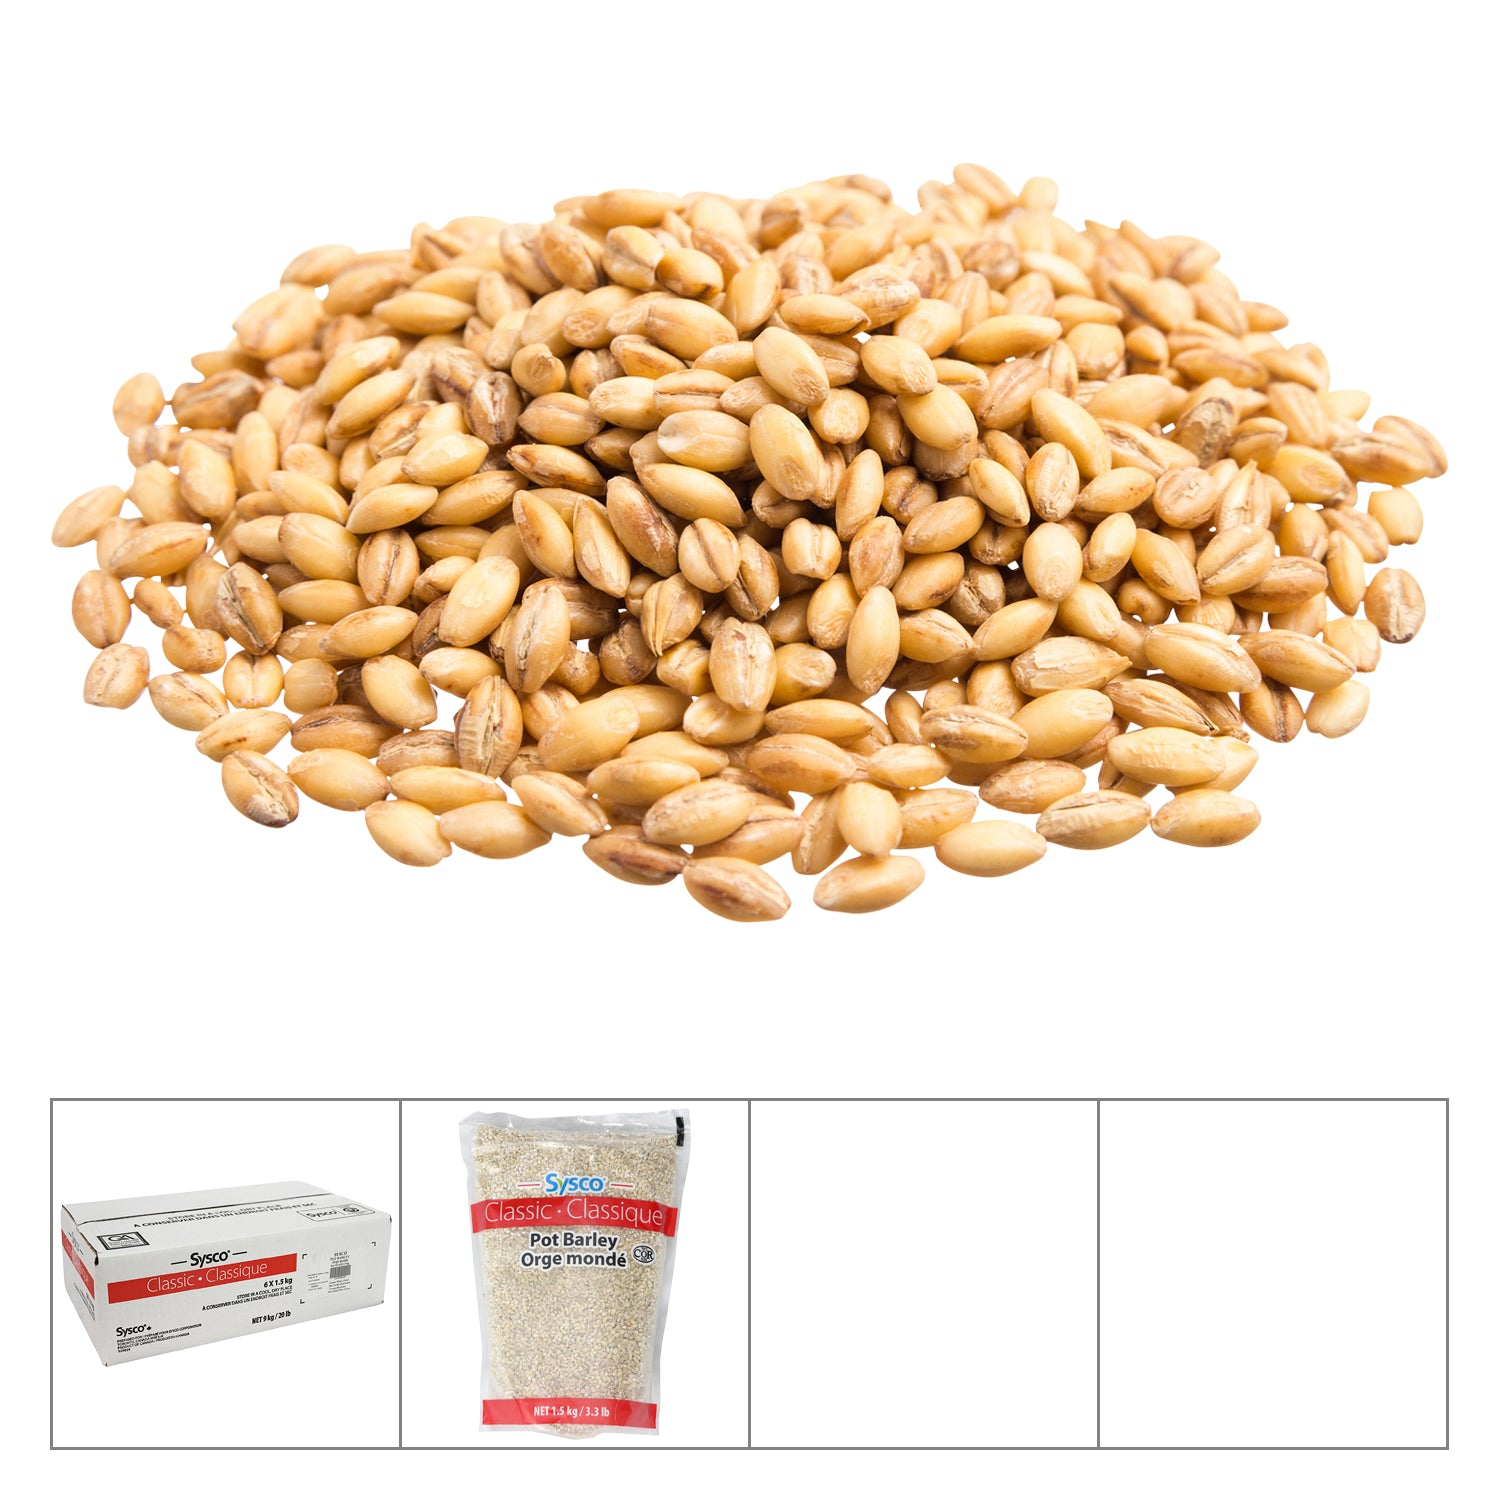 Sysco Classic Pot Barley 1.5 kg - 6 Pack [$2.22/kg]